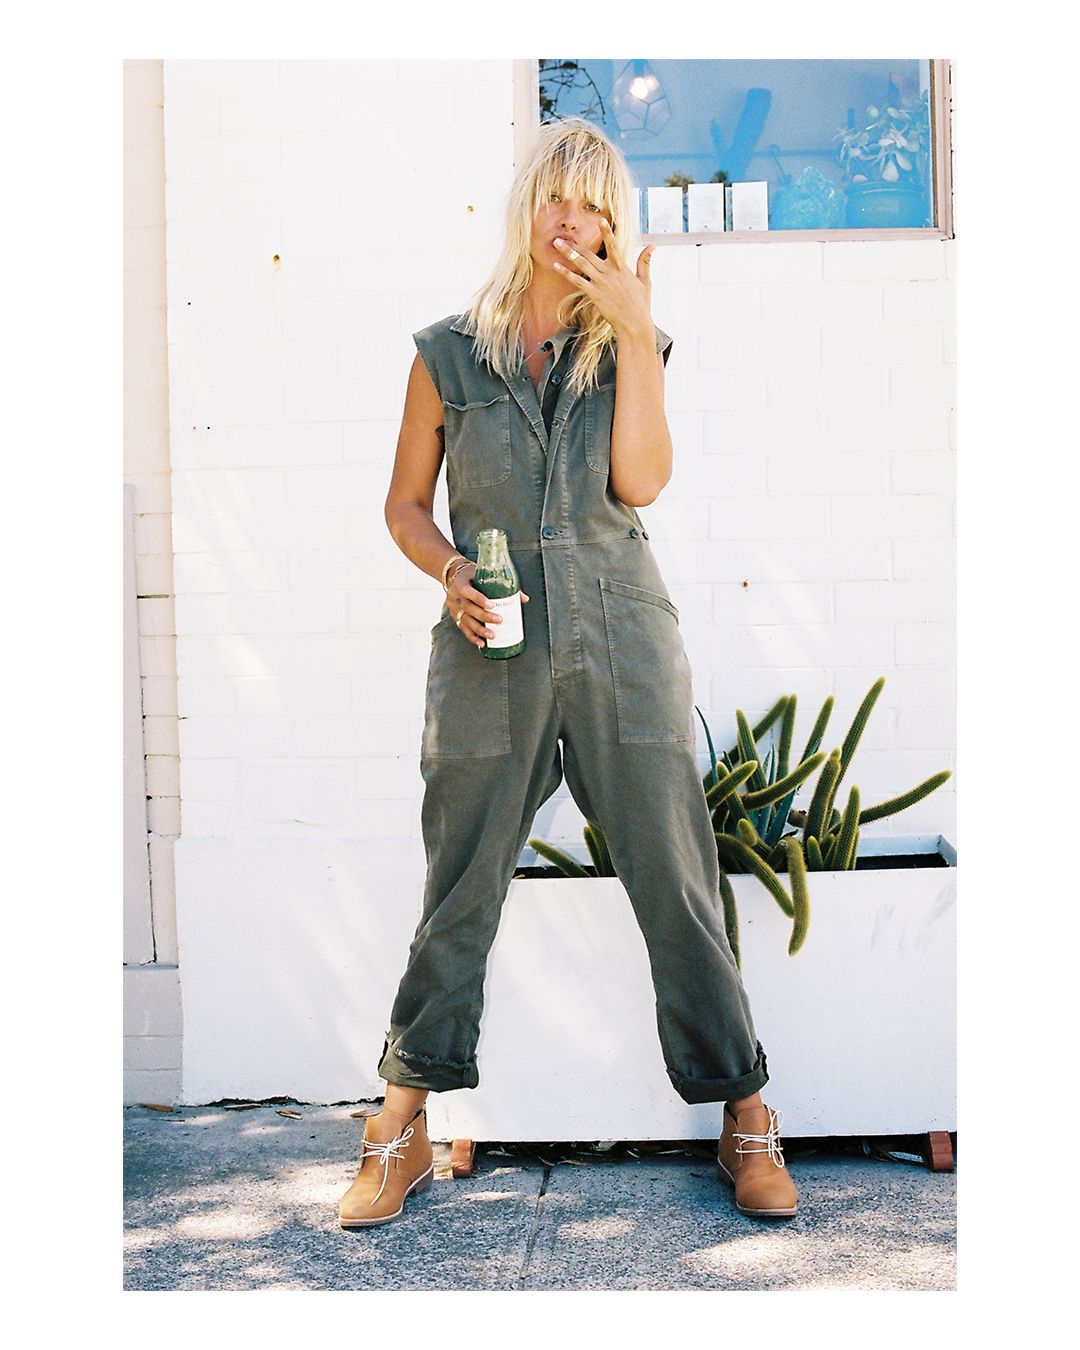 Bared_Footwear_Womens_Collaboration_Anna_Feller_Tan_Leather_Nuthatch_Desert_Boots_Green_Pant_Suit